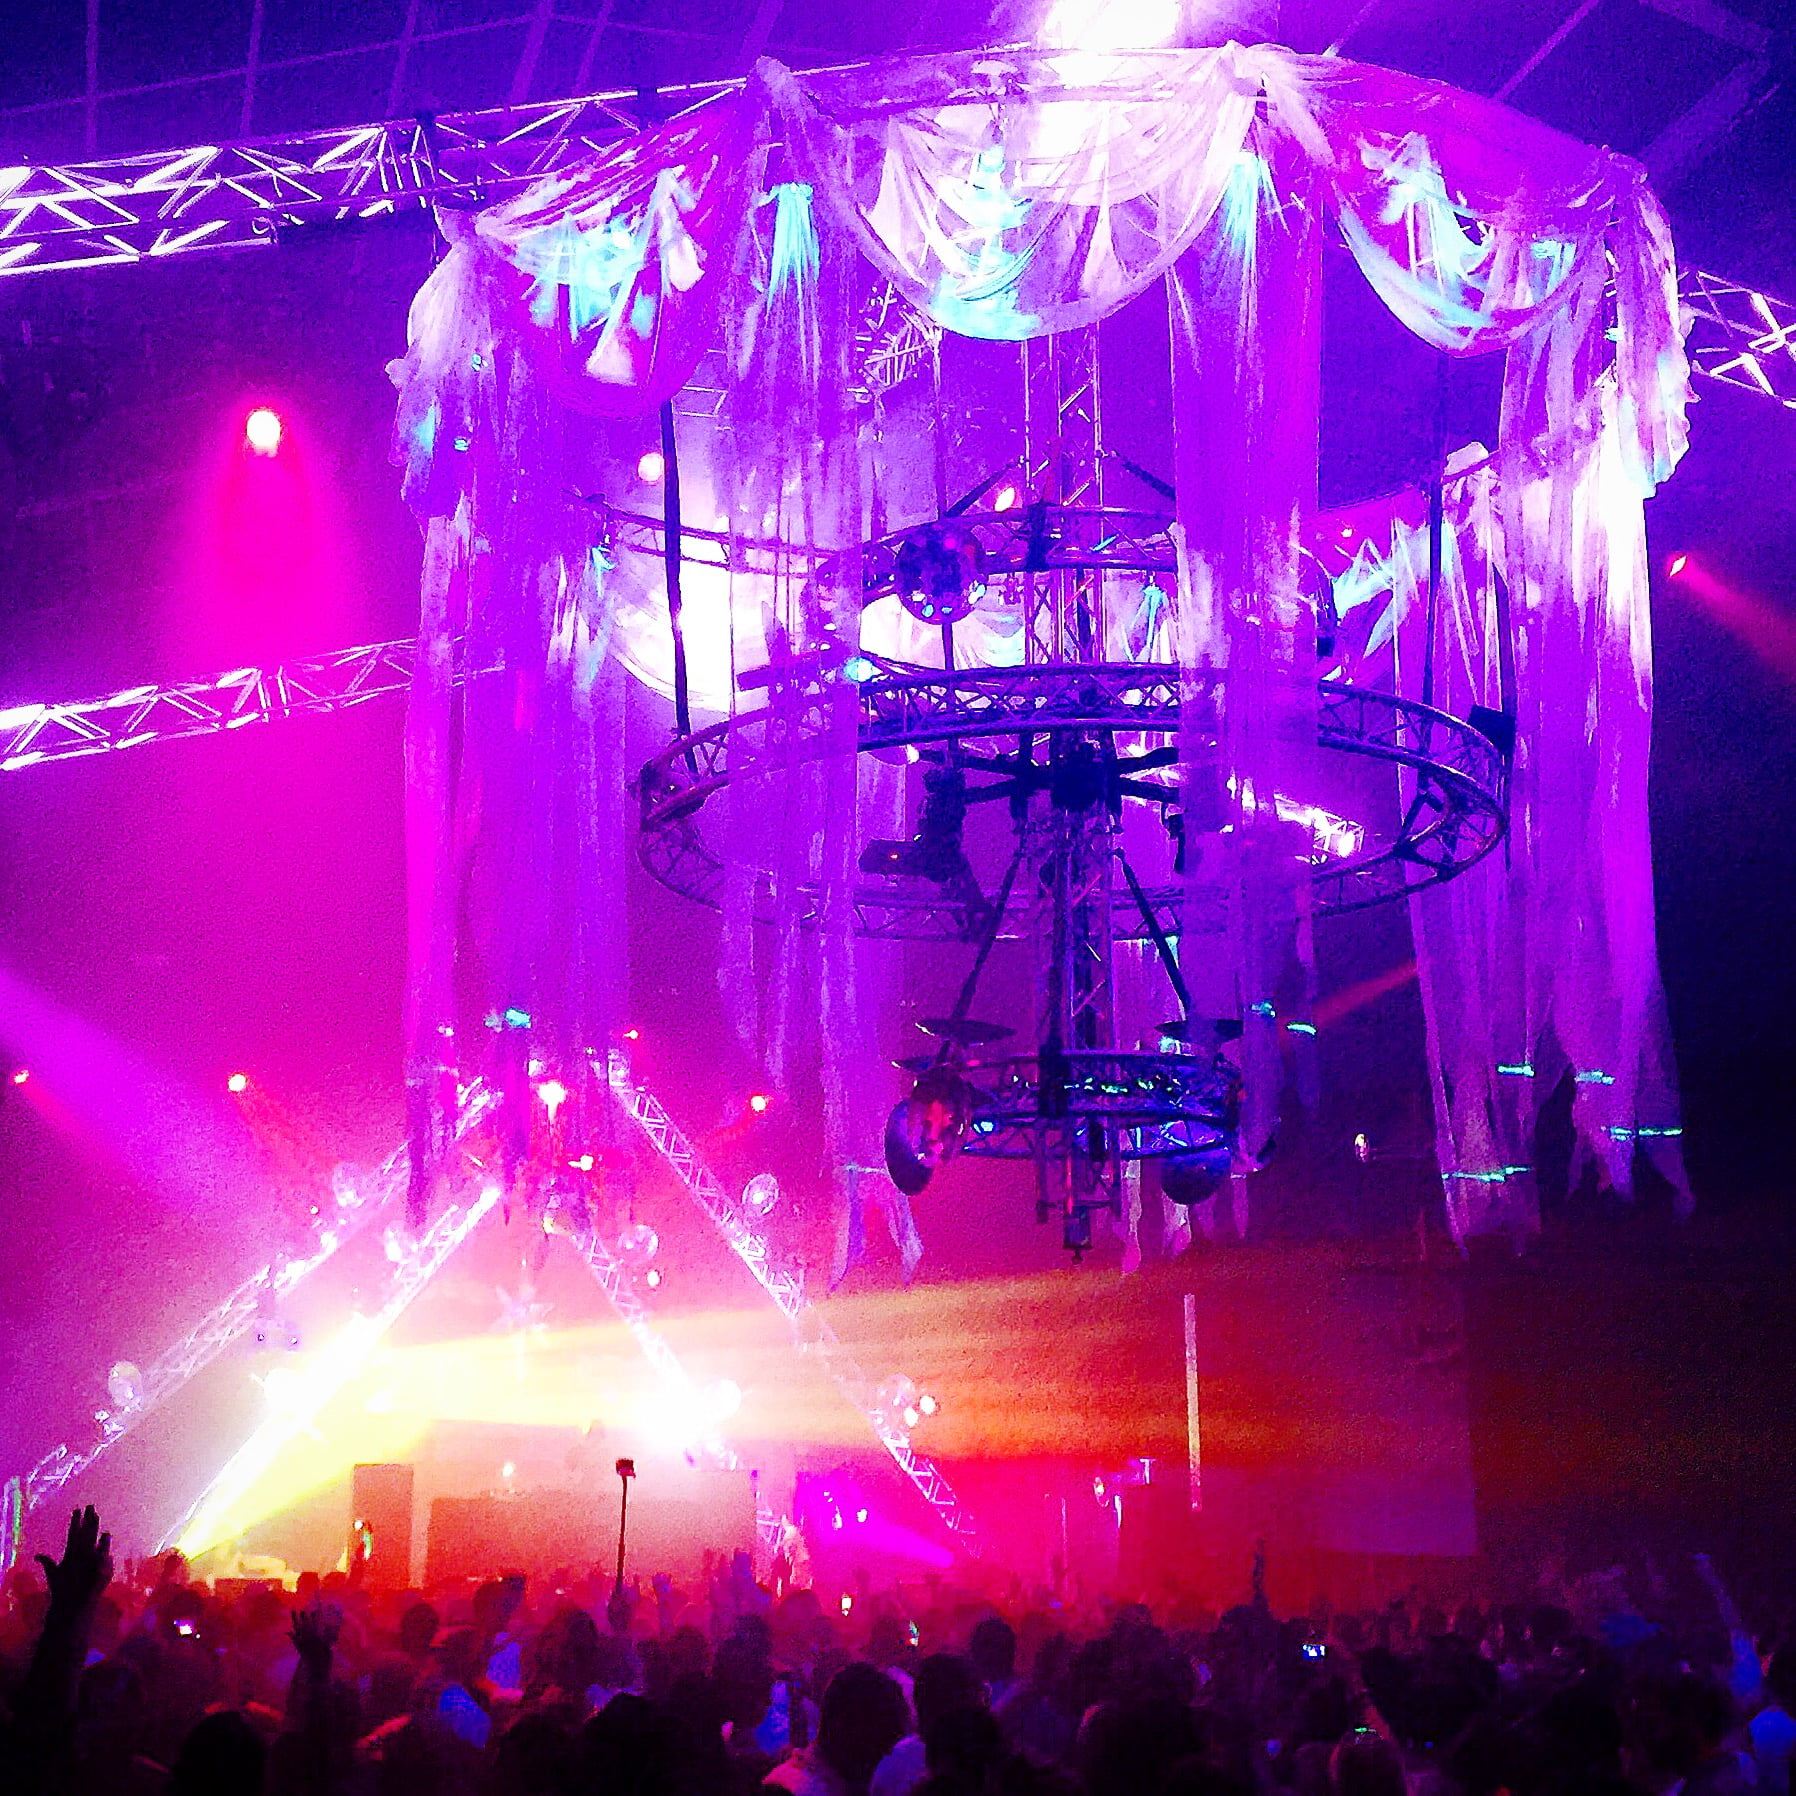 Harbour Party NYE at Luna Park Sydney presented by Modular Event Solutions